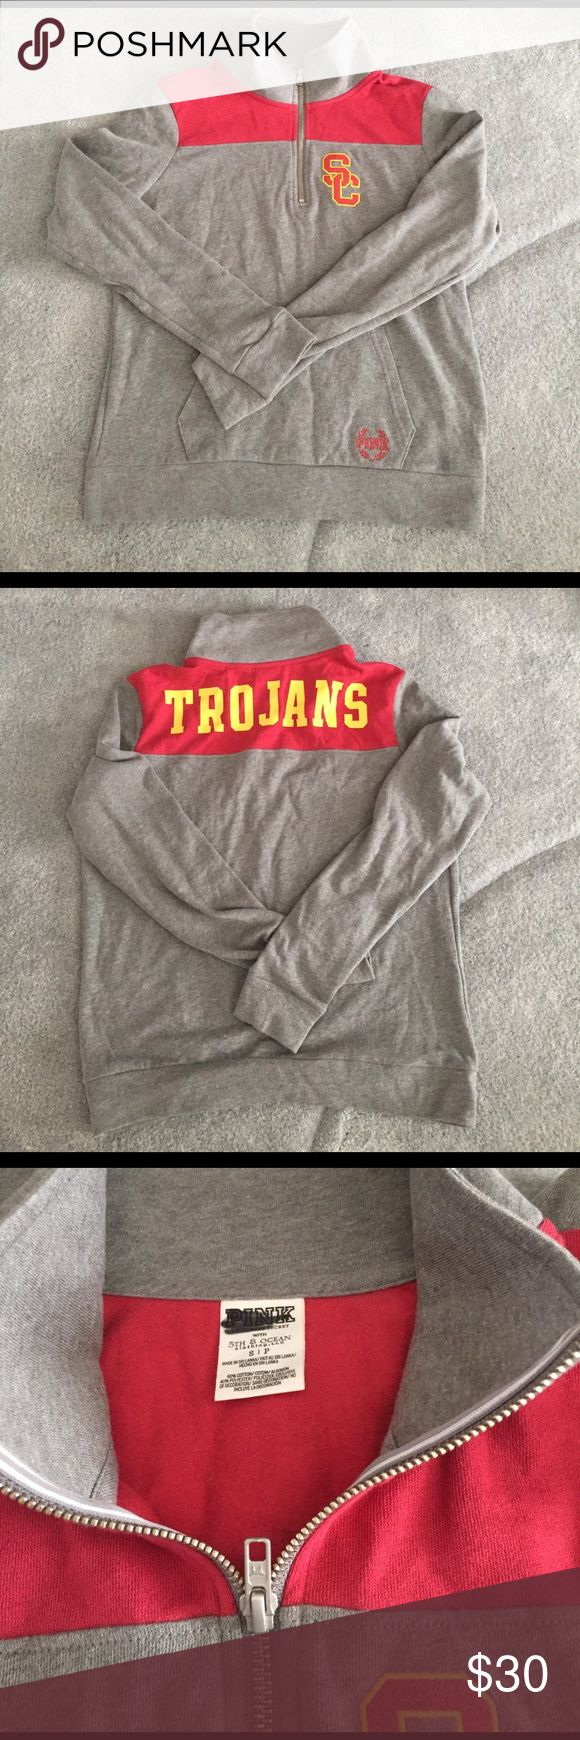 NWOT PINK qtr zip pullover USC Trojans Victoria's Secret pink.  USC Southern California Trojans pullover.  New without tags.  Label marked to prevent store returns.  Pet free smoke free posher.   Bundle and save + only pay one shipping fee!!! PINK Victoria's Secret Tops Sweatshirts & Hoodies